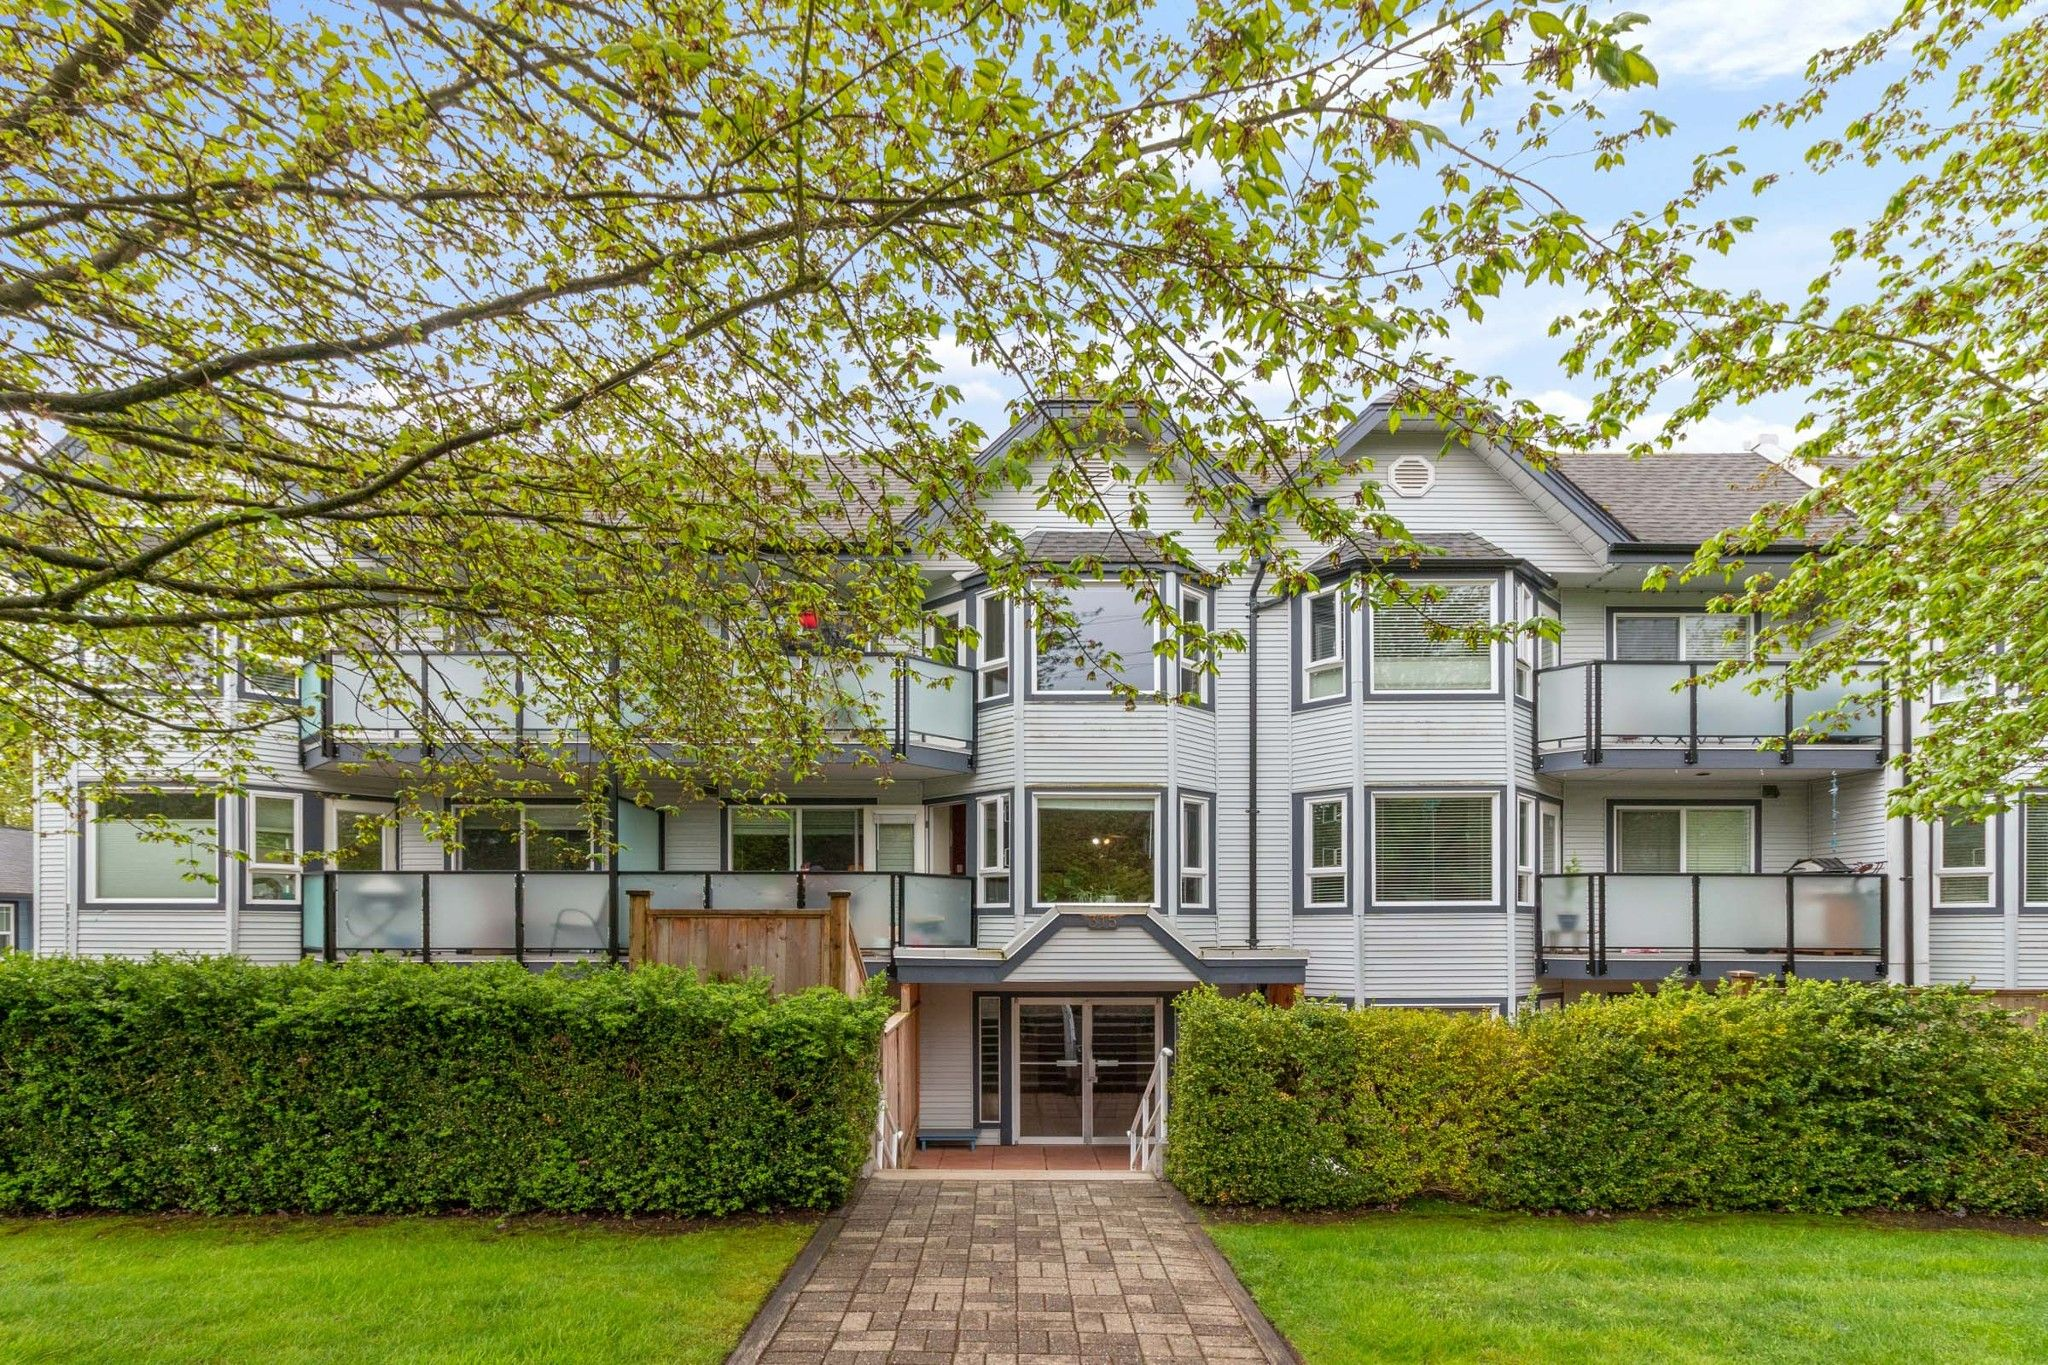 """Main Photo: 102 315 E 3RD Street in North Vancouver: Lower Lonsdale Condo for sale in """"Dunbarton Manor"""" : MLS®# R2574510"""